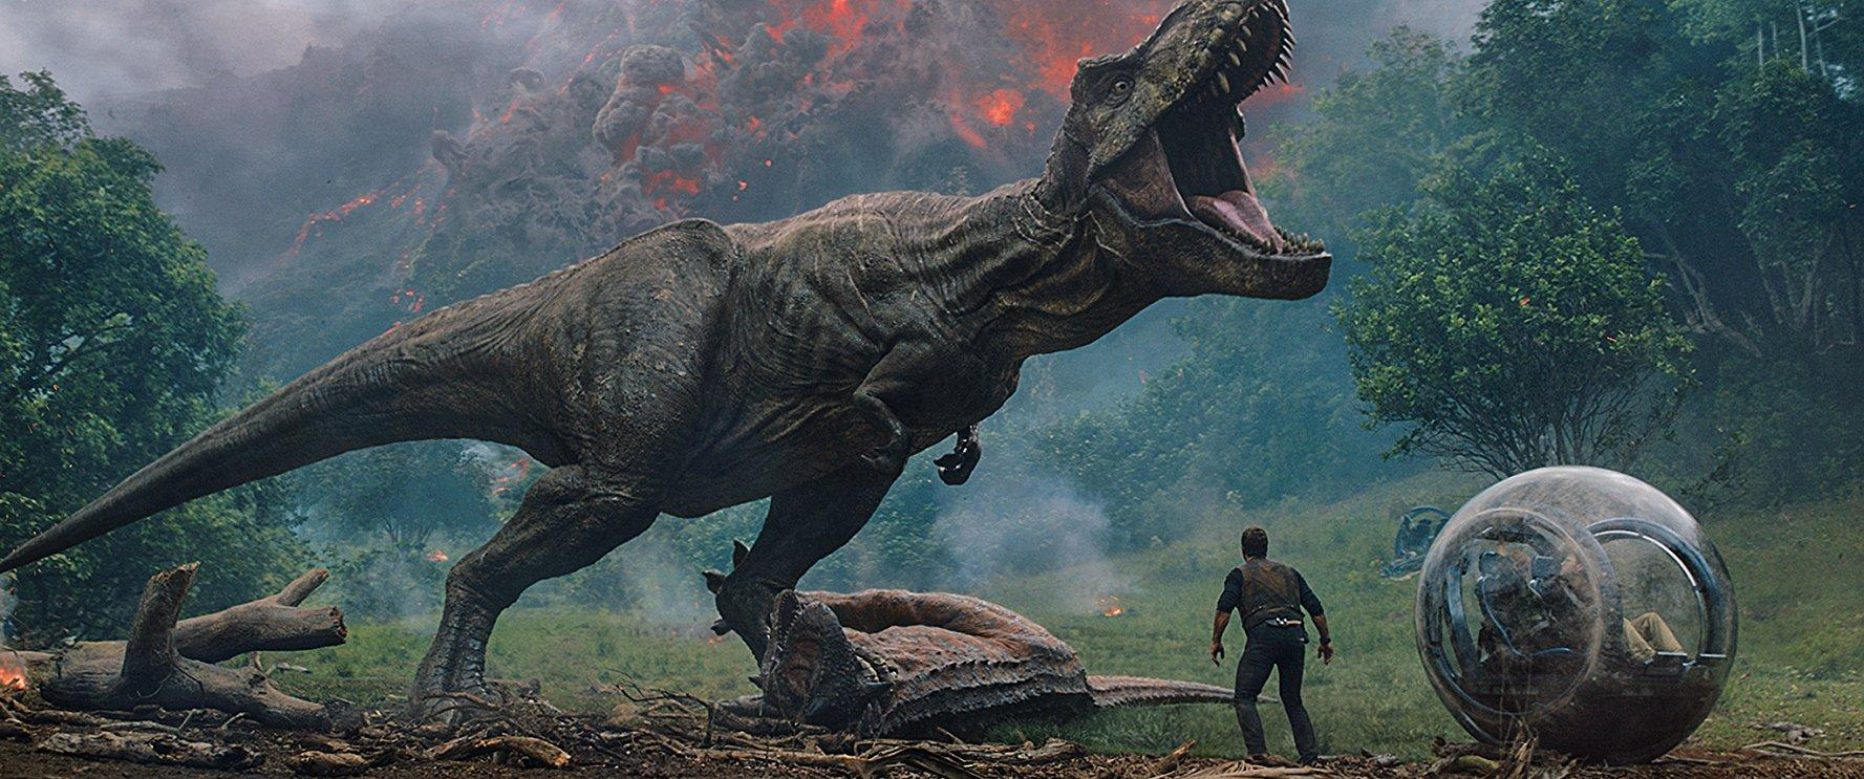 Jurassic World i dinosauri impossibili da creare